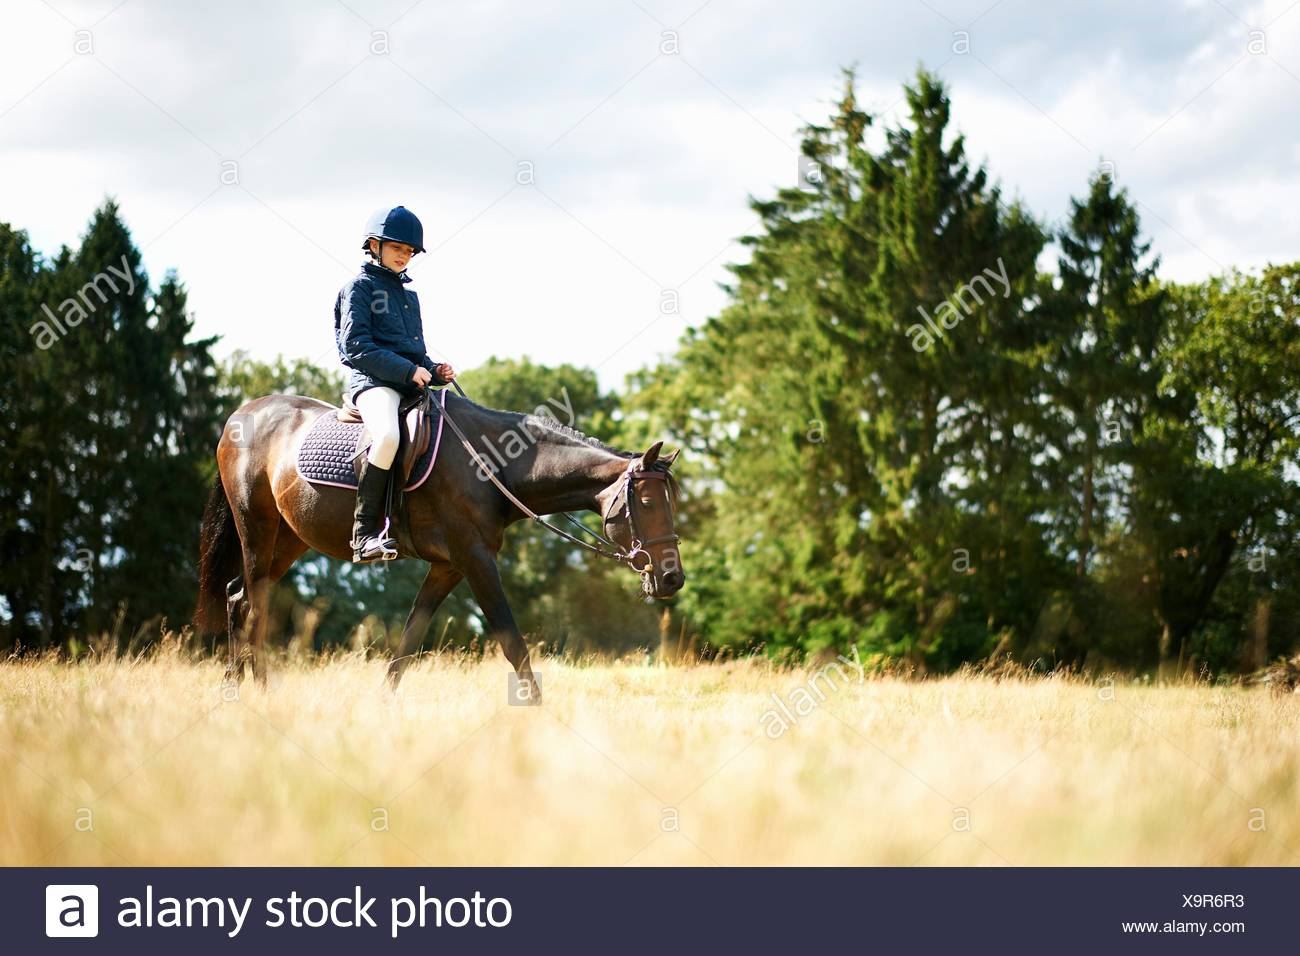 Girl horseback riding in field - Stock Image